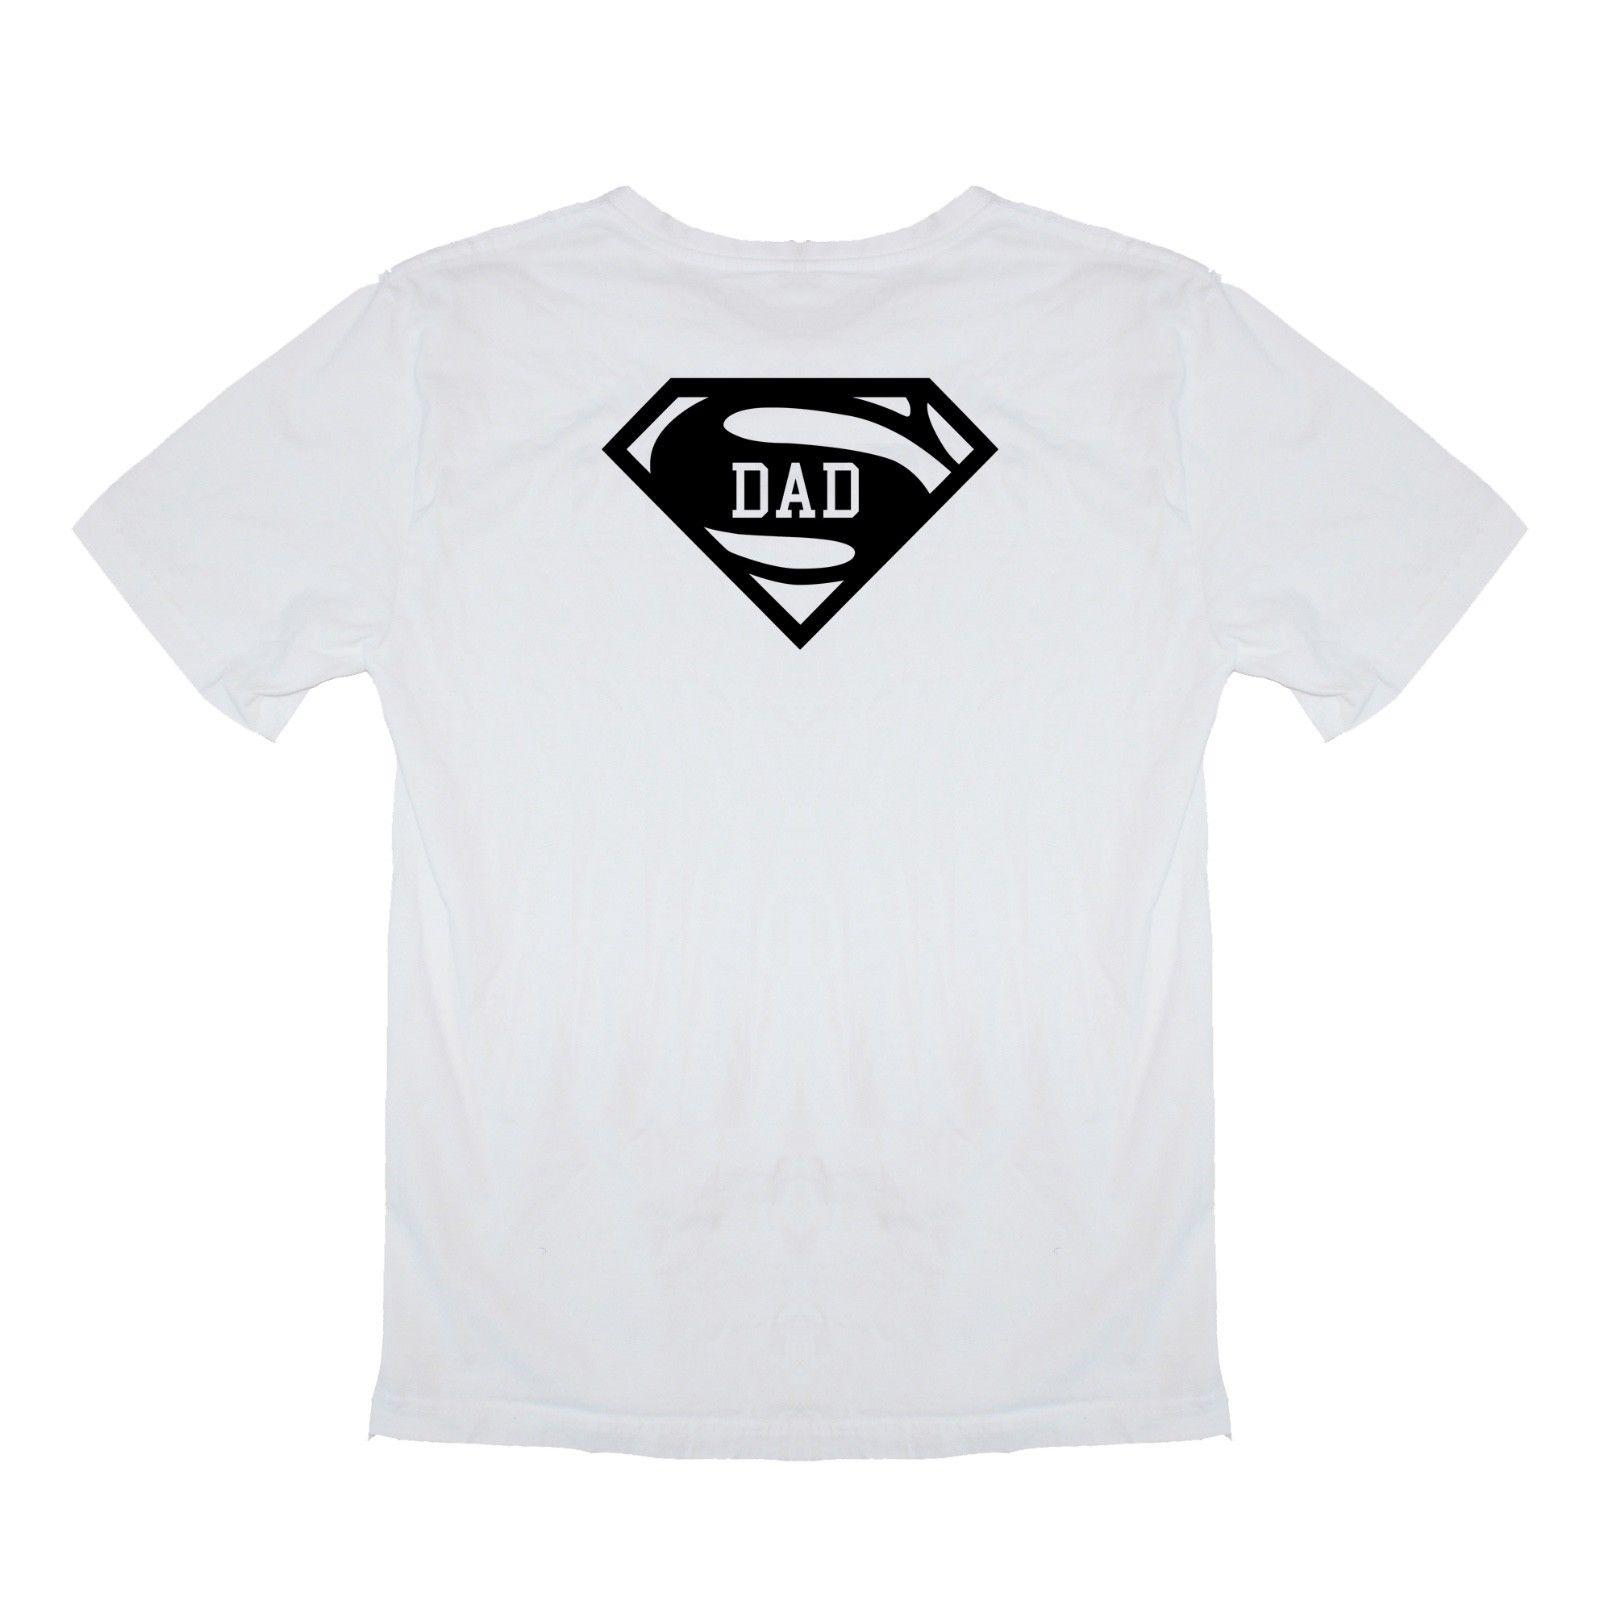 5f2355783 Fathers Day Super Dad Man Funny Gift Best Dad Ever Shirt S XXXL Many  Colours Awesome Tee Different T Shirts From Wessyswaffy, $11.01  DHgate.Com